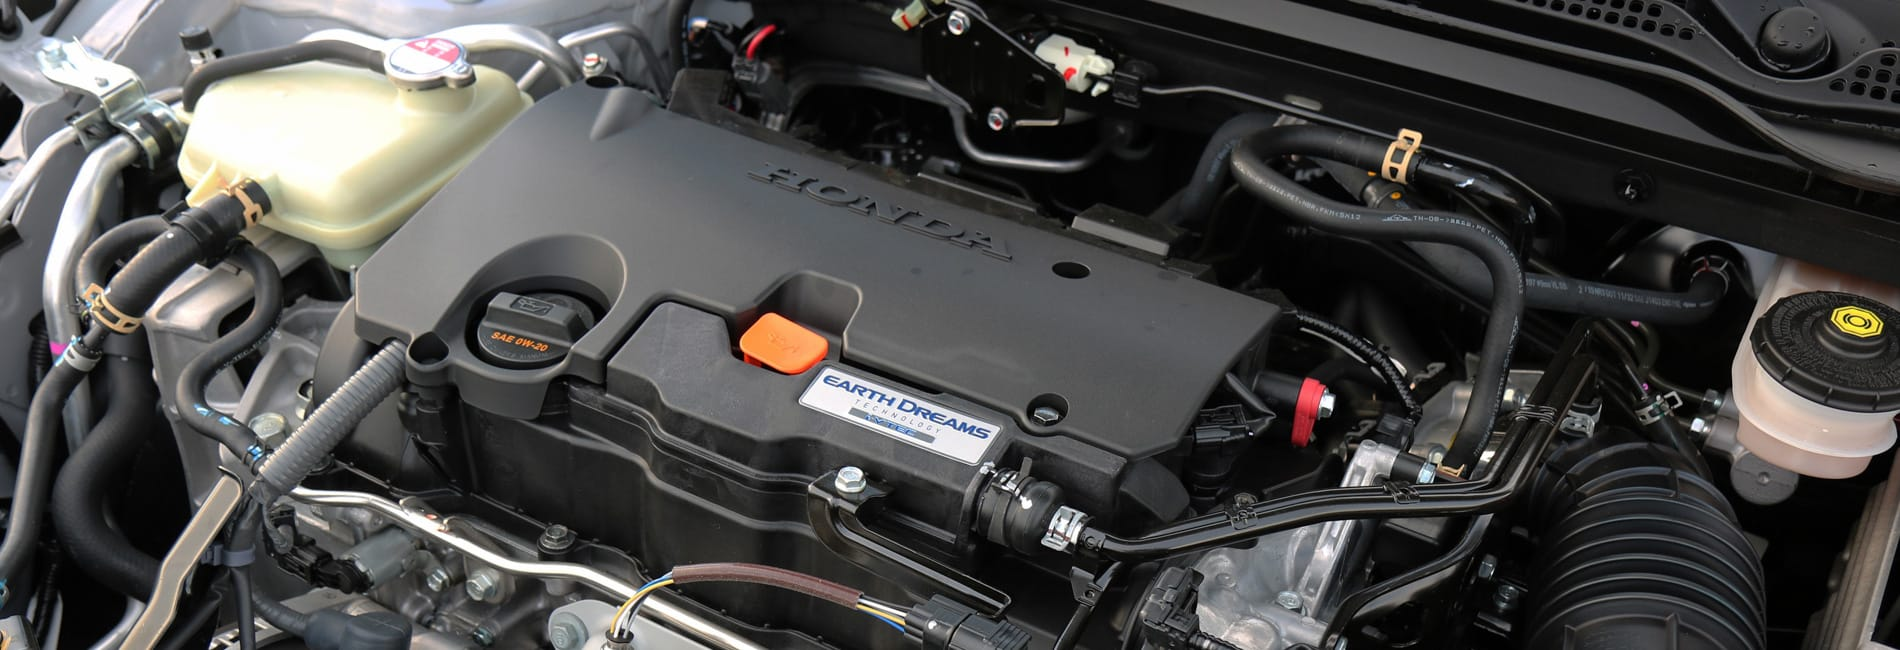 A Honda Engine as viewed from the top down